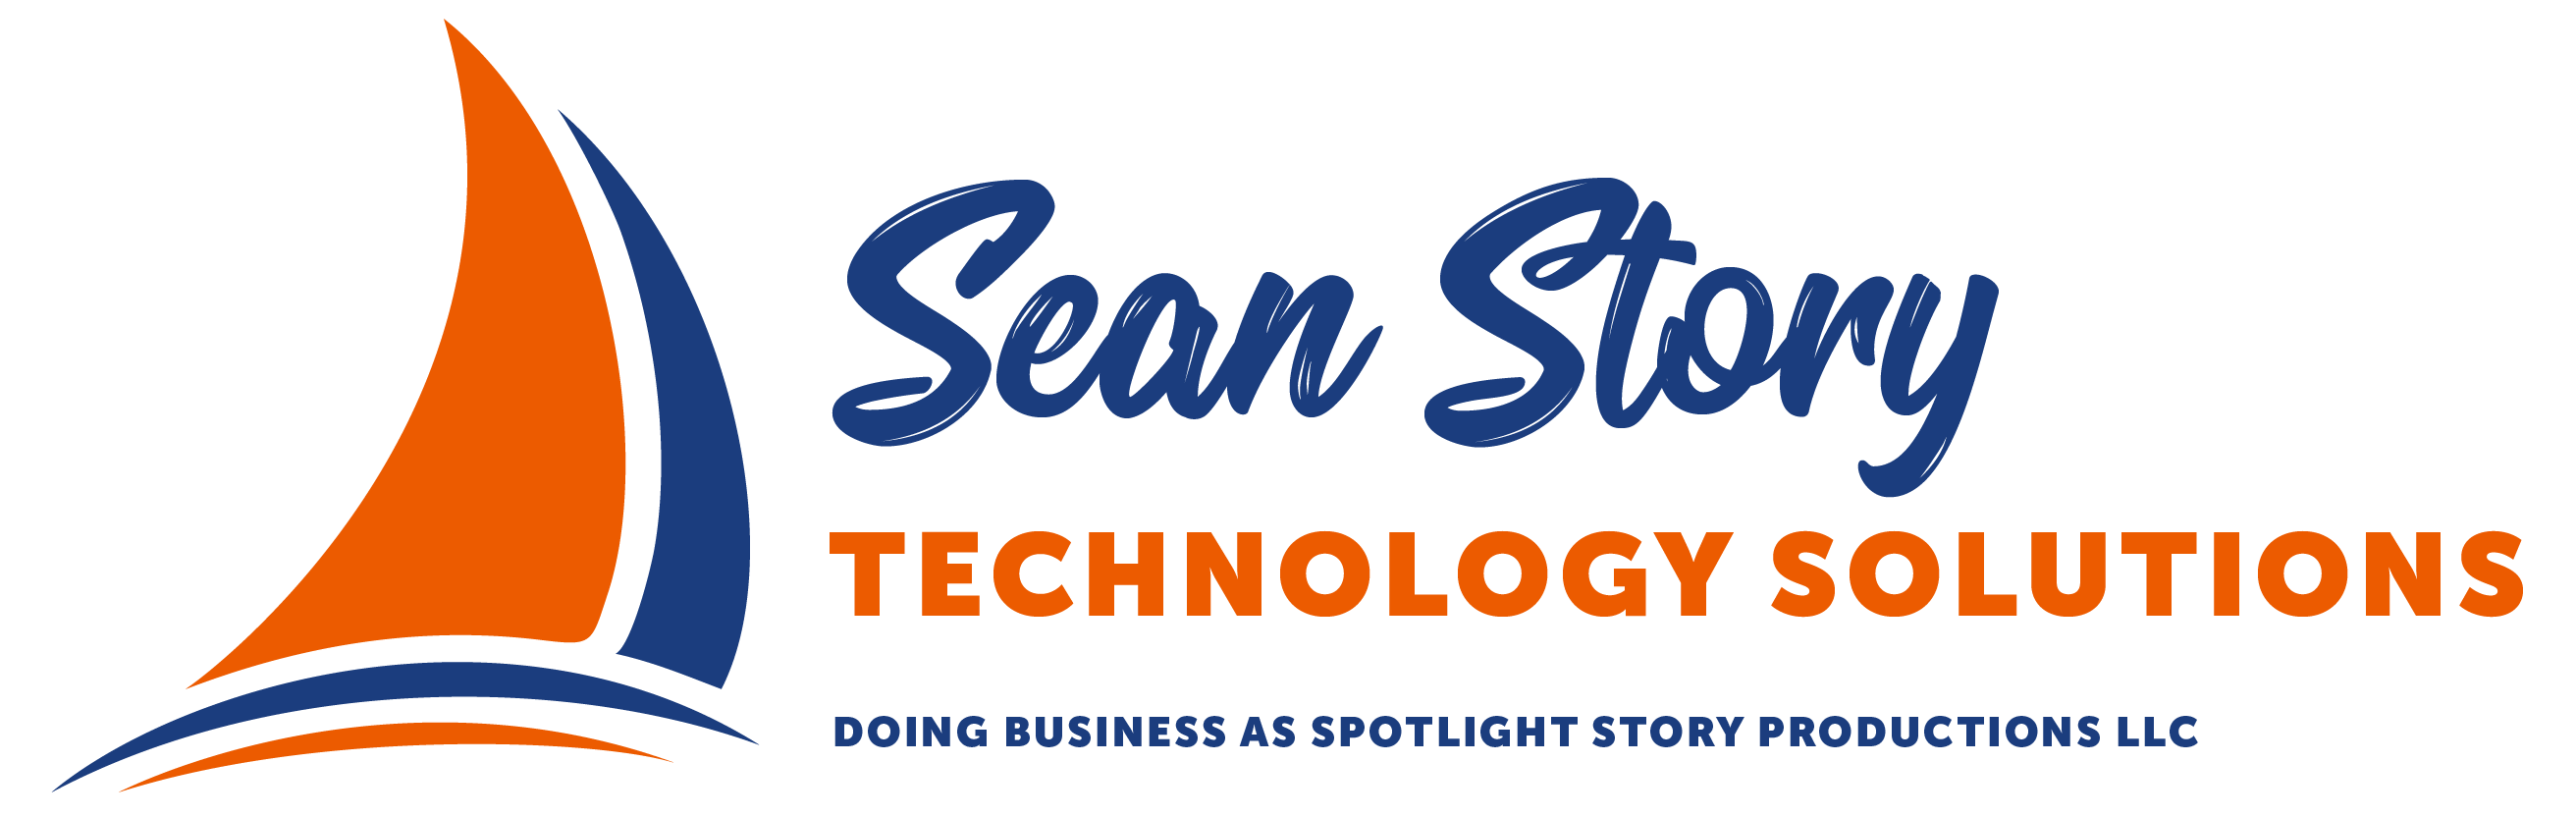 Sean Story Technology Solutions